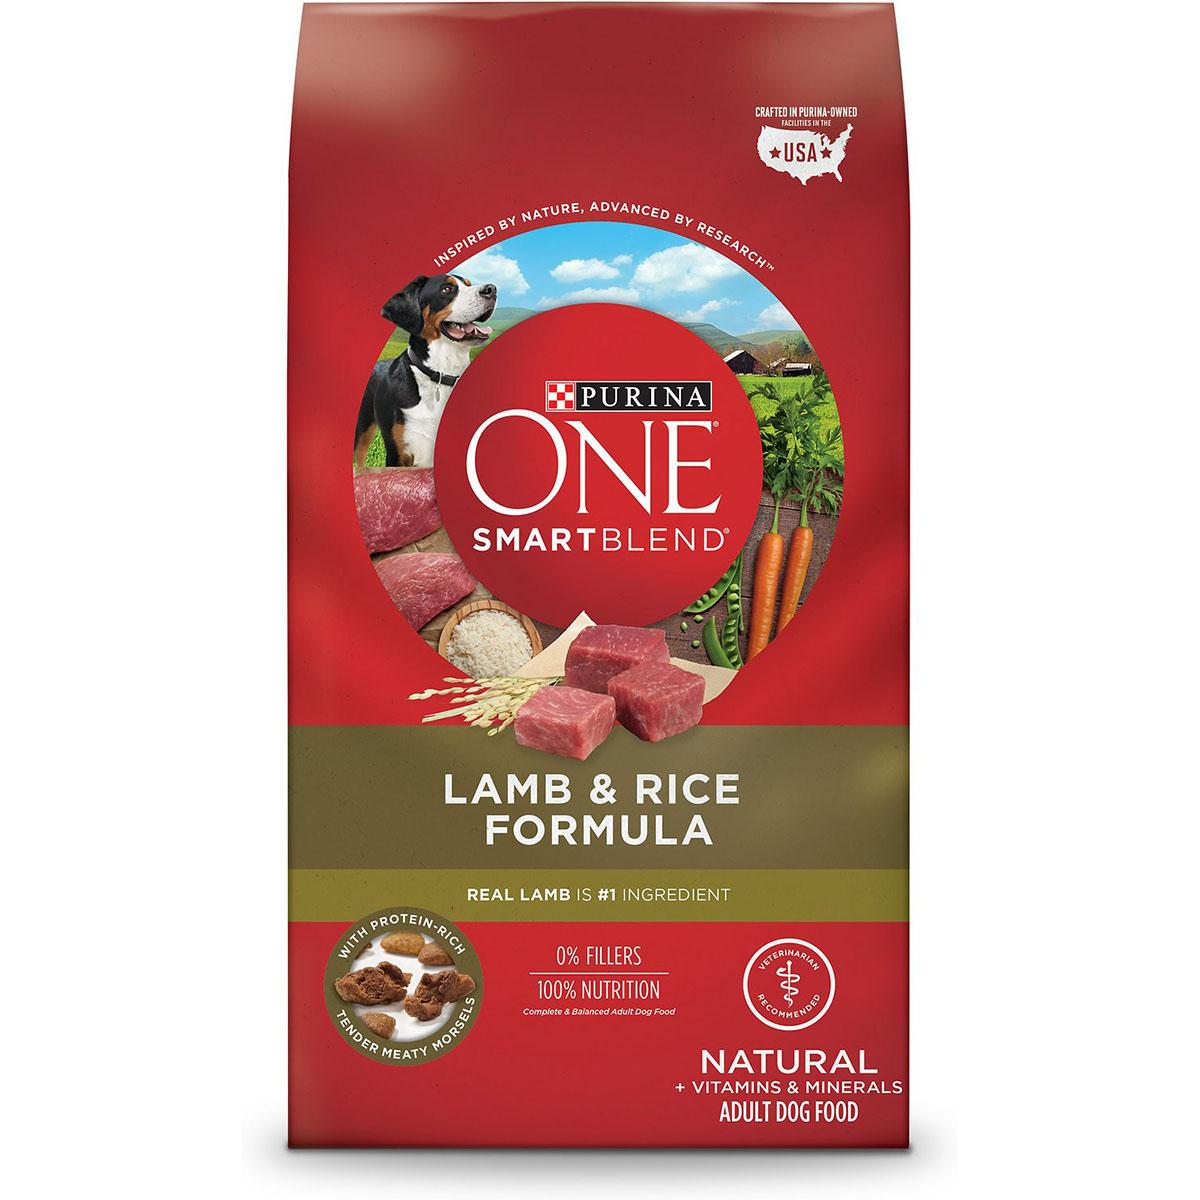 Free Purina ONE Dog or Cat Food Bag